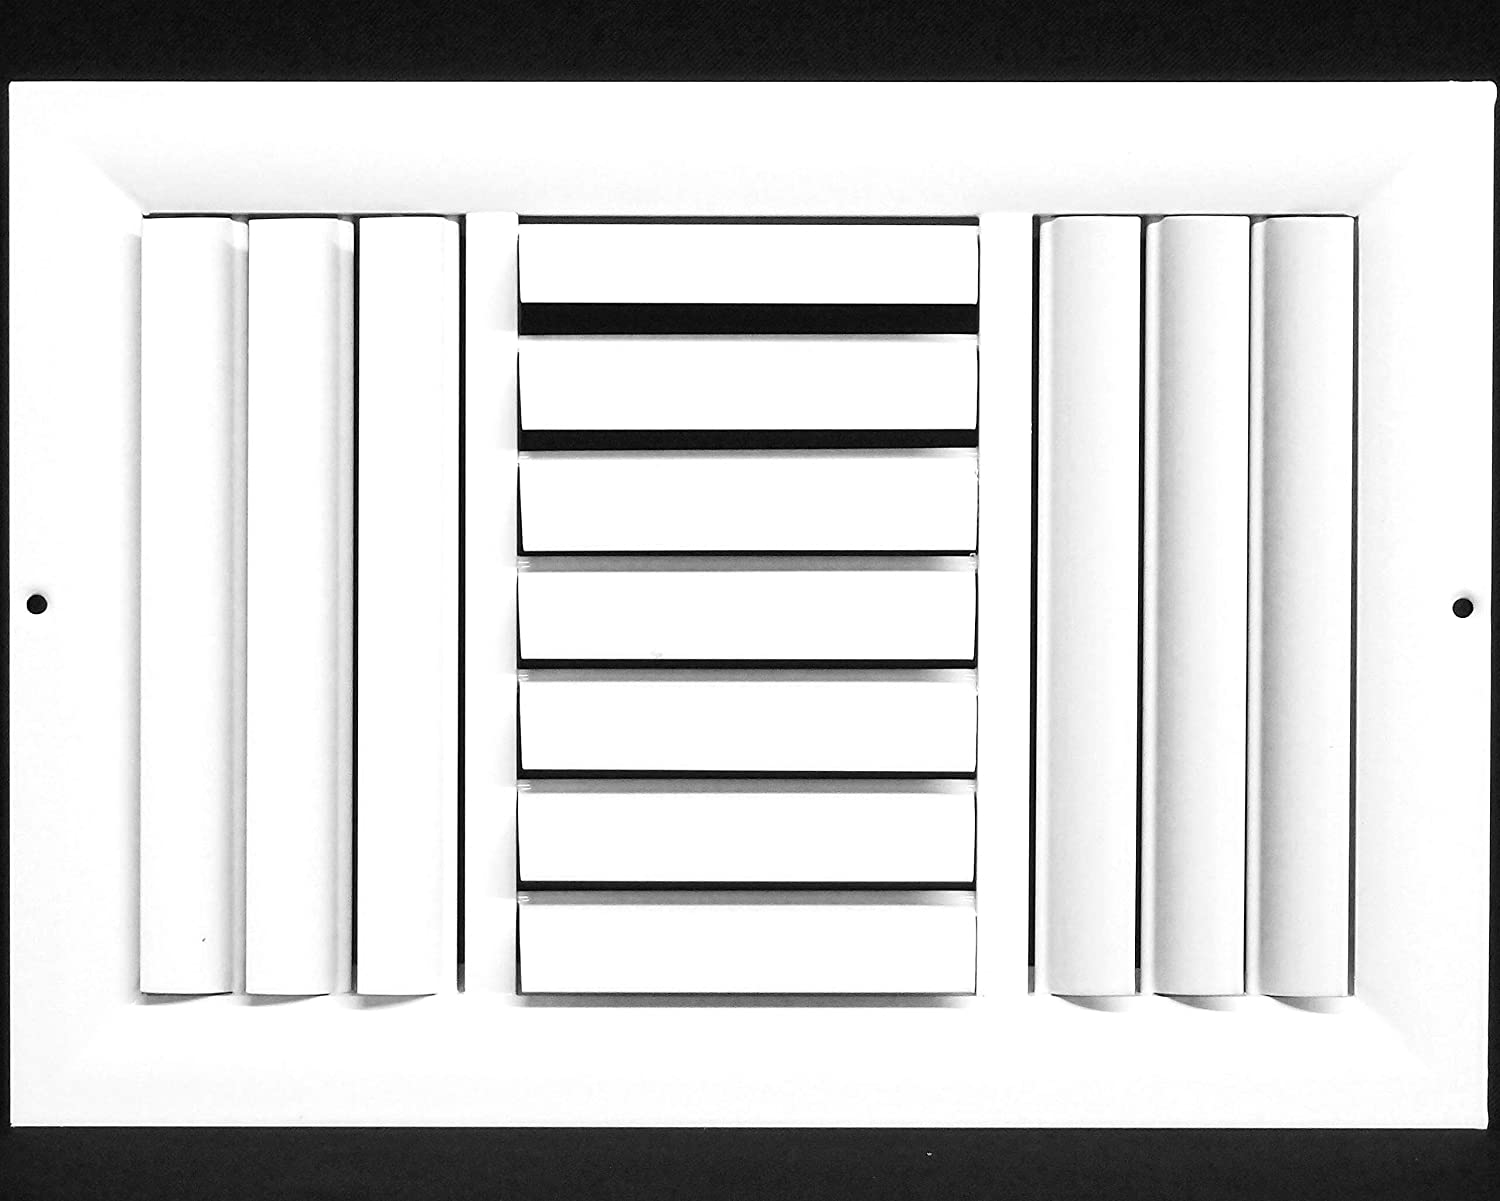 """14""""w X 8""""h 3-Way Aluminum Curved Blade Adjustable Air Supply HVAC Diffuser - Full Control Vertical/Horizontal Airflow Direction - Vent Duct Cover [Outer Dimensions: 15.65""""w X 9.65""""h]"""